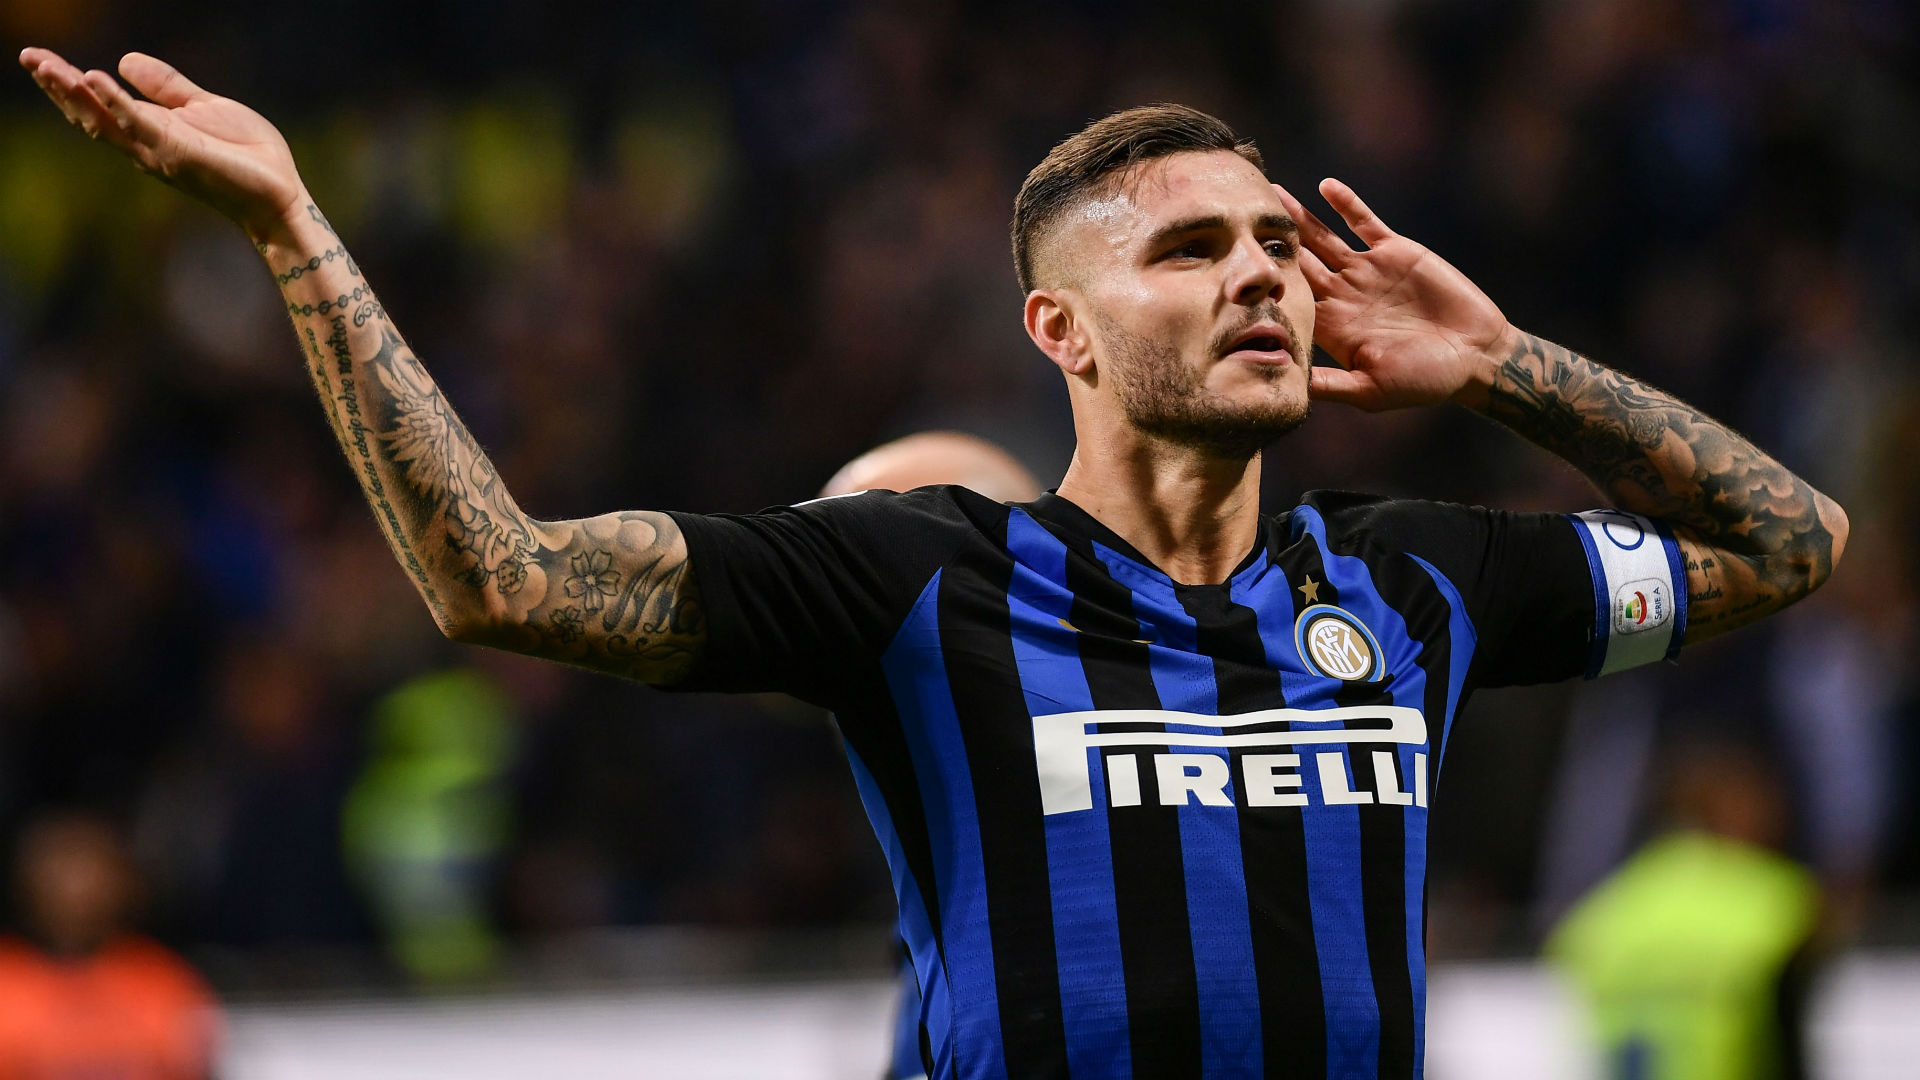 Inter torino betting preview goal dnotes crypto currency